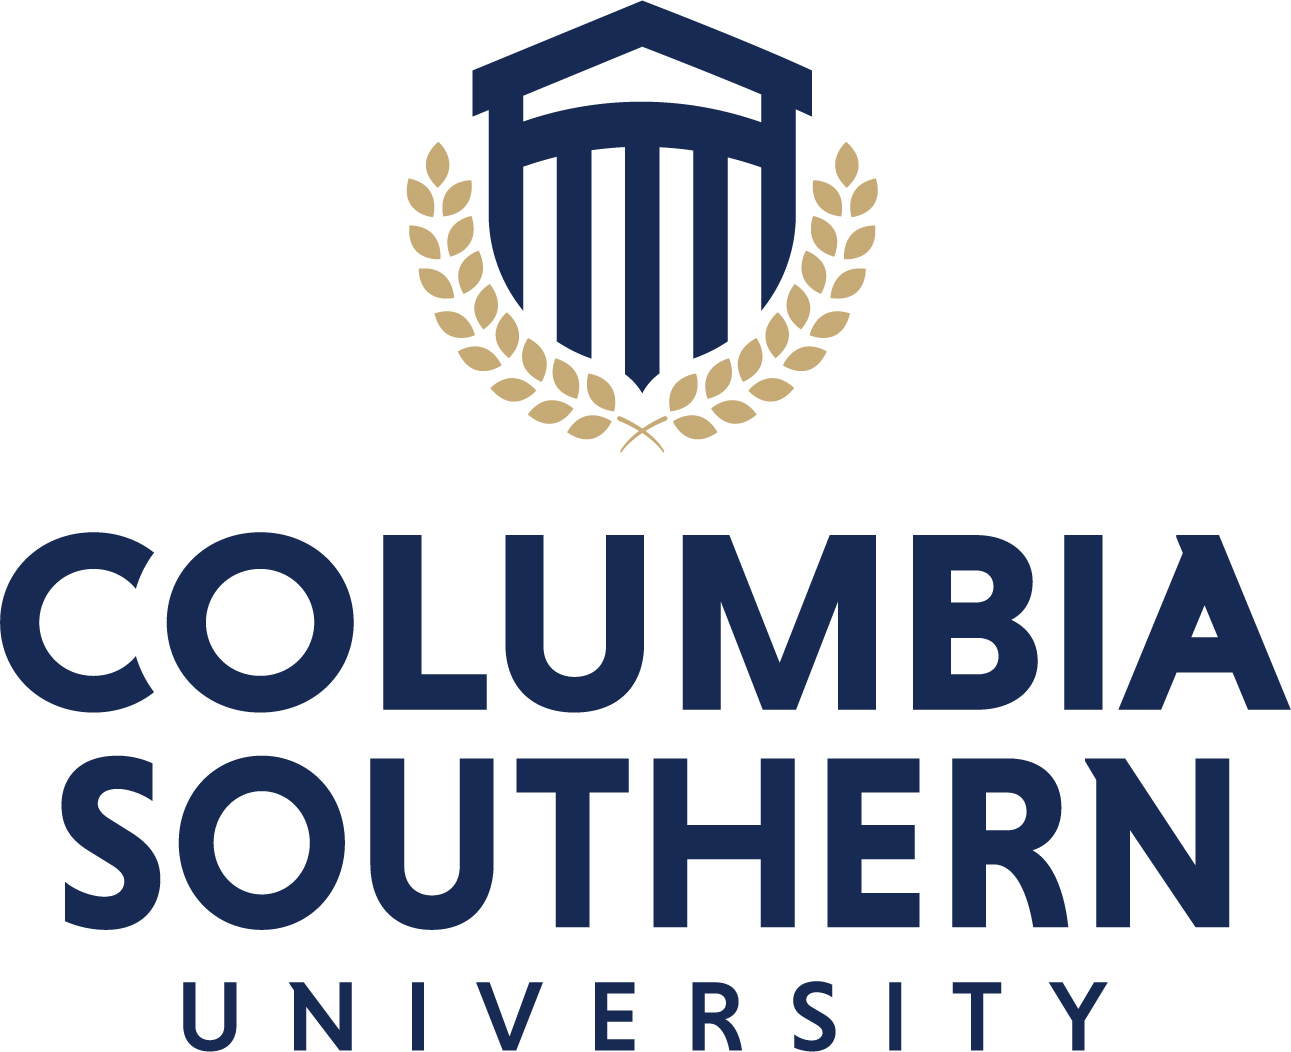 A picture of the Columbia Southern University